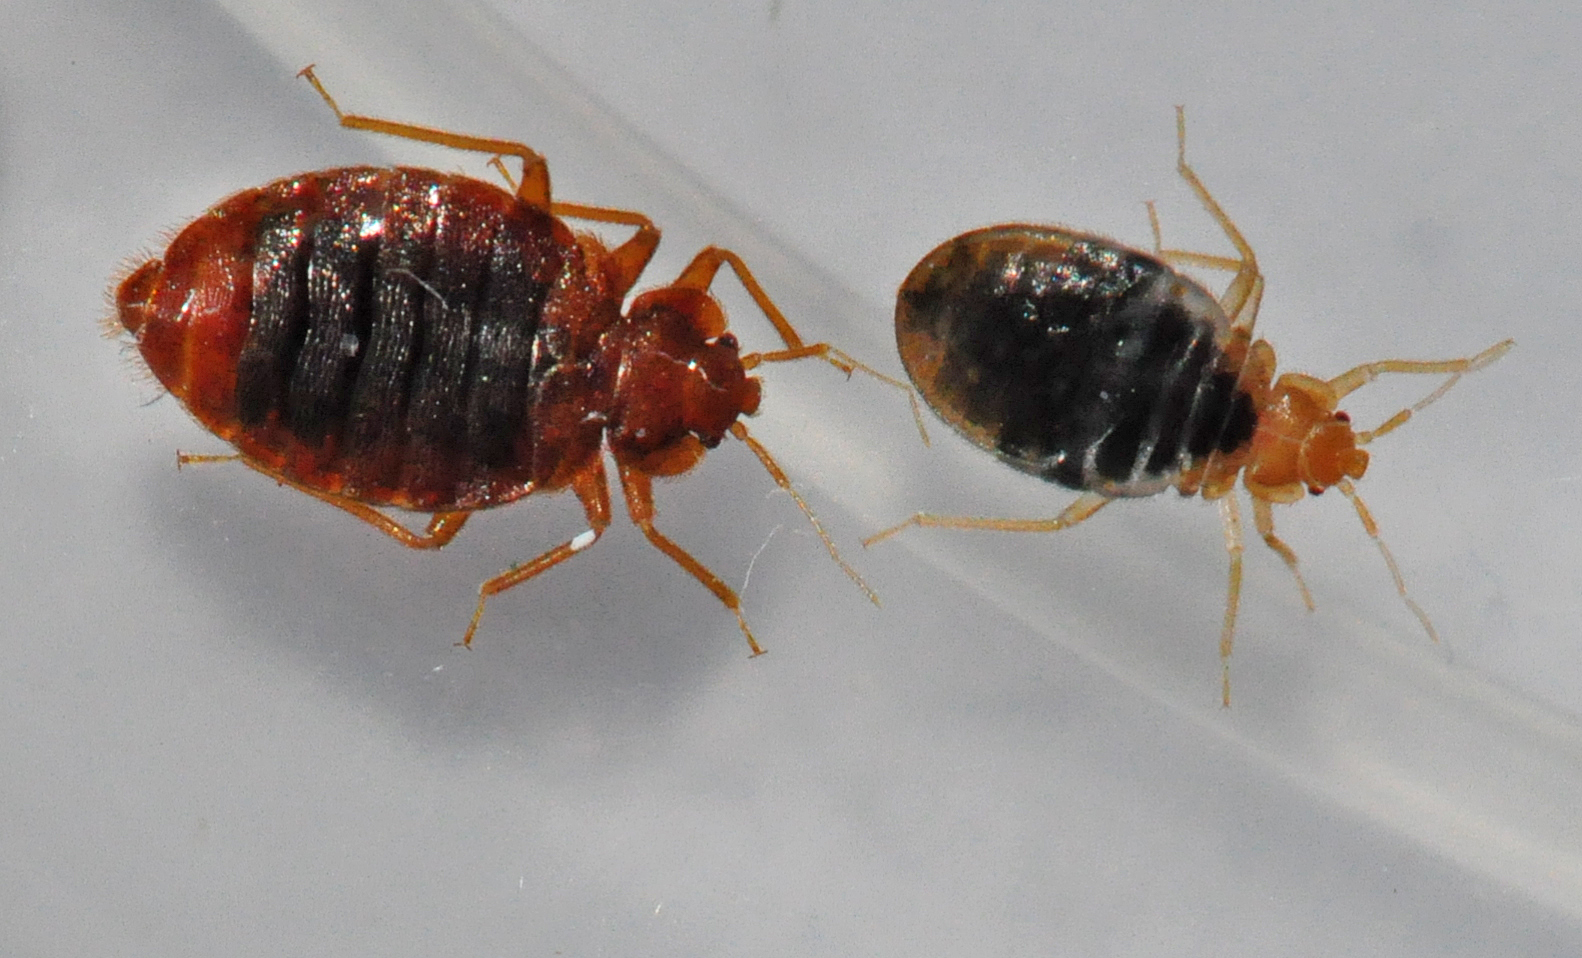 Bed Bugs Control Of Biting Bed Bugs